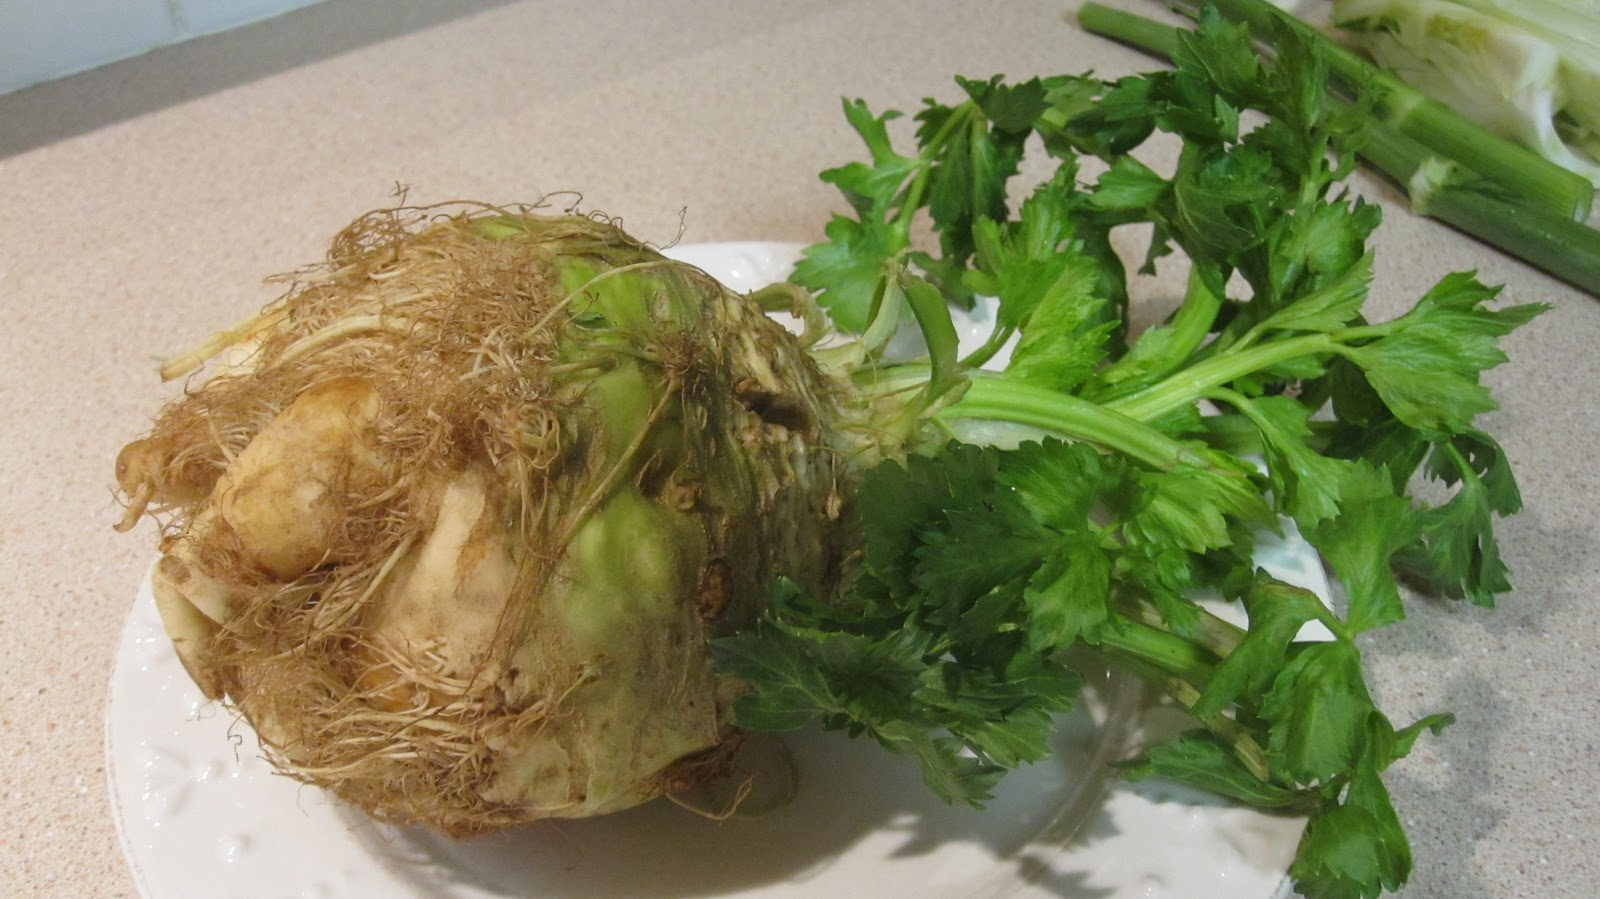 blog-image-celeriac-large